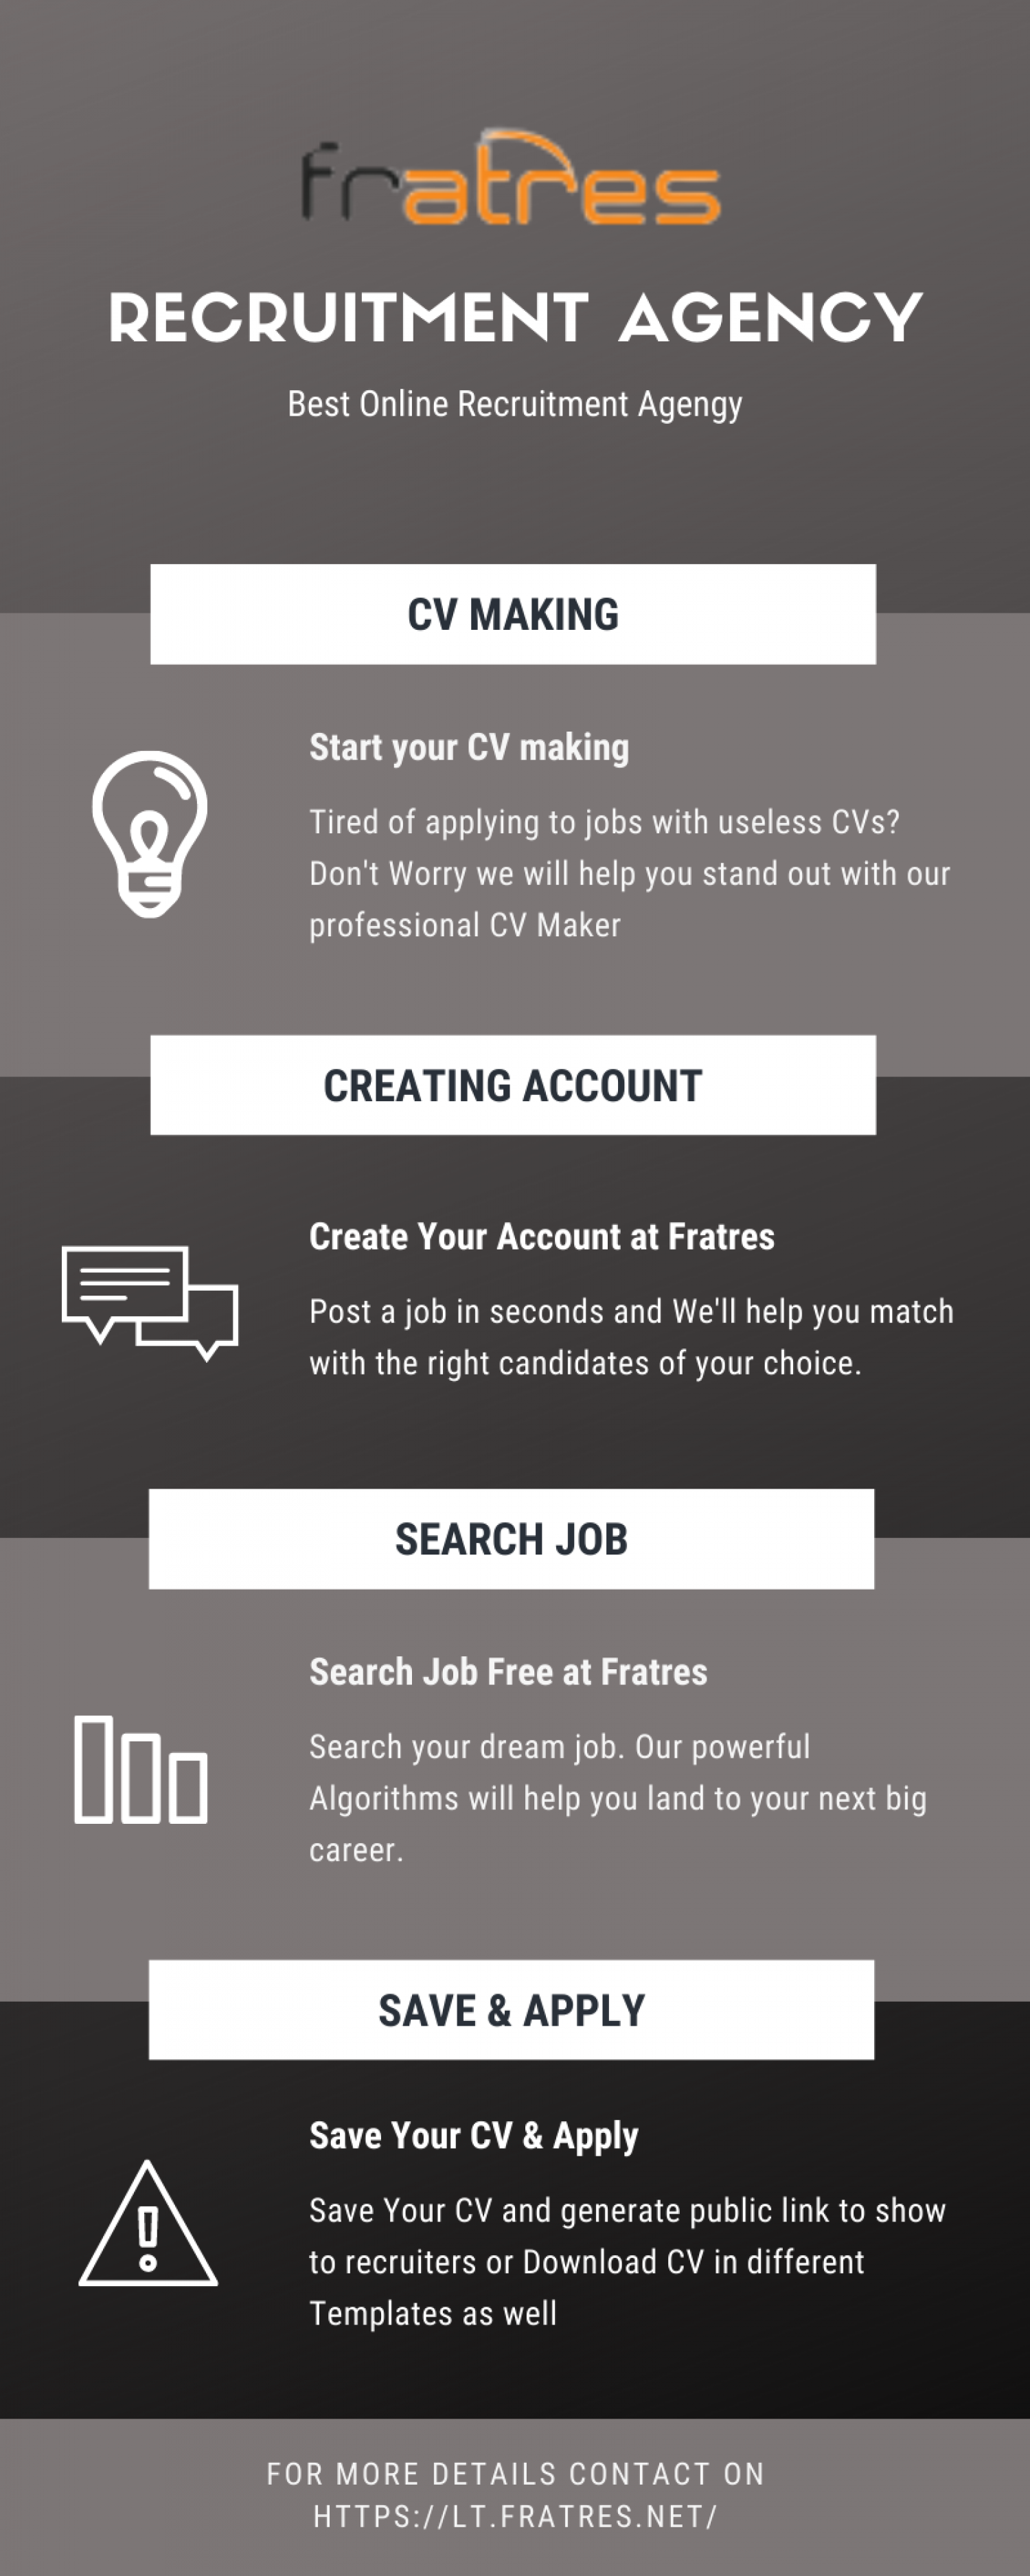 Fratres  Infographic